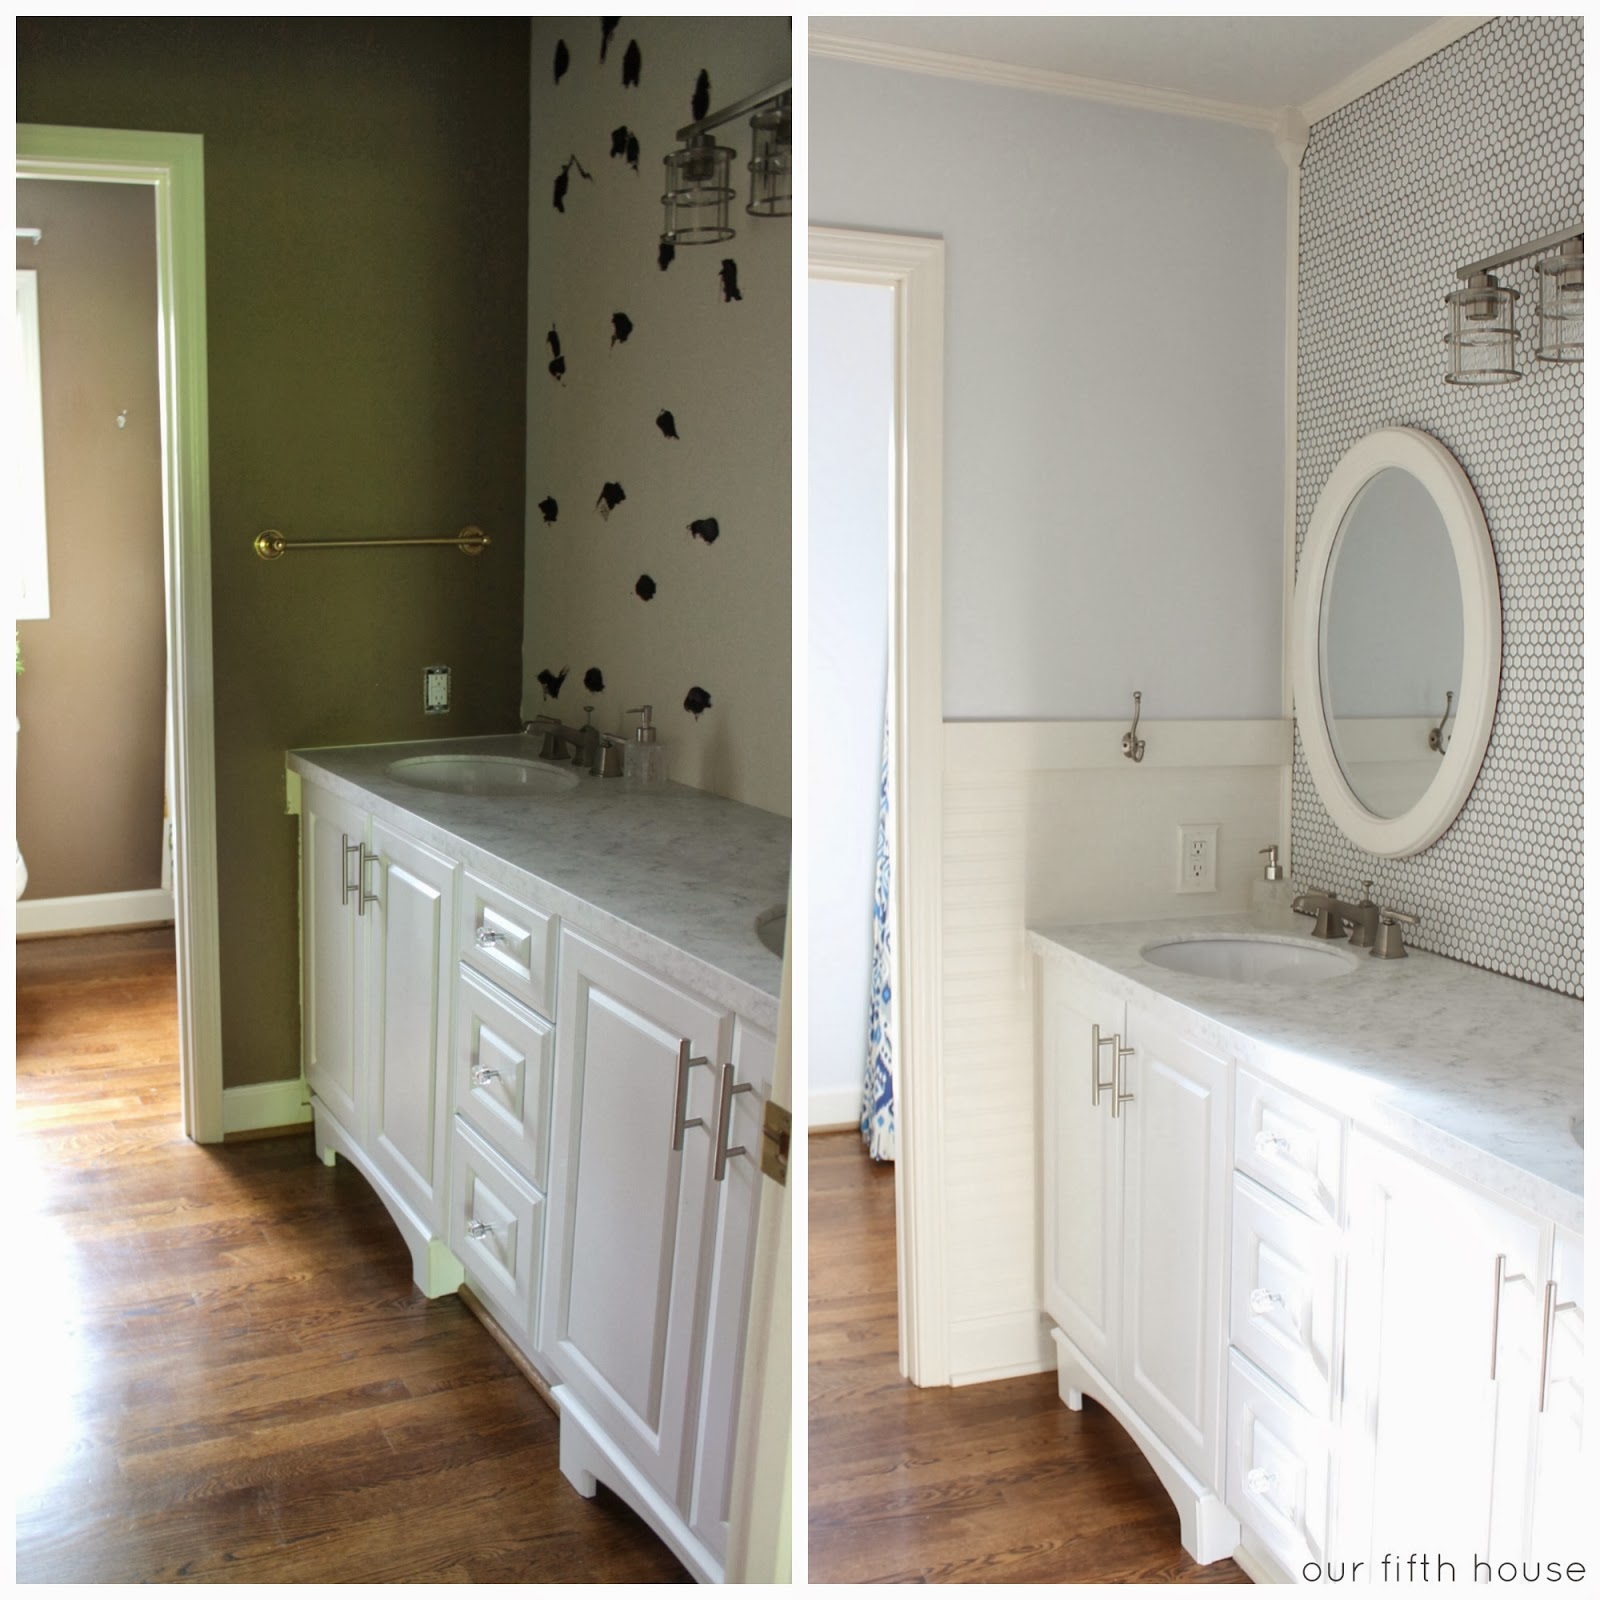 Can I Paint Bathroom Floor Tiles: Our Fifth House: Before & After